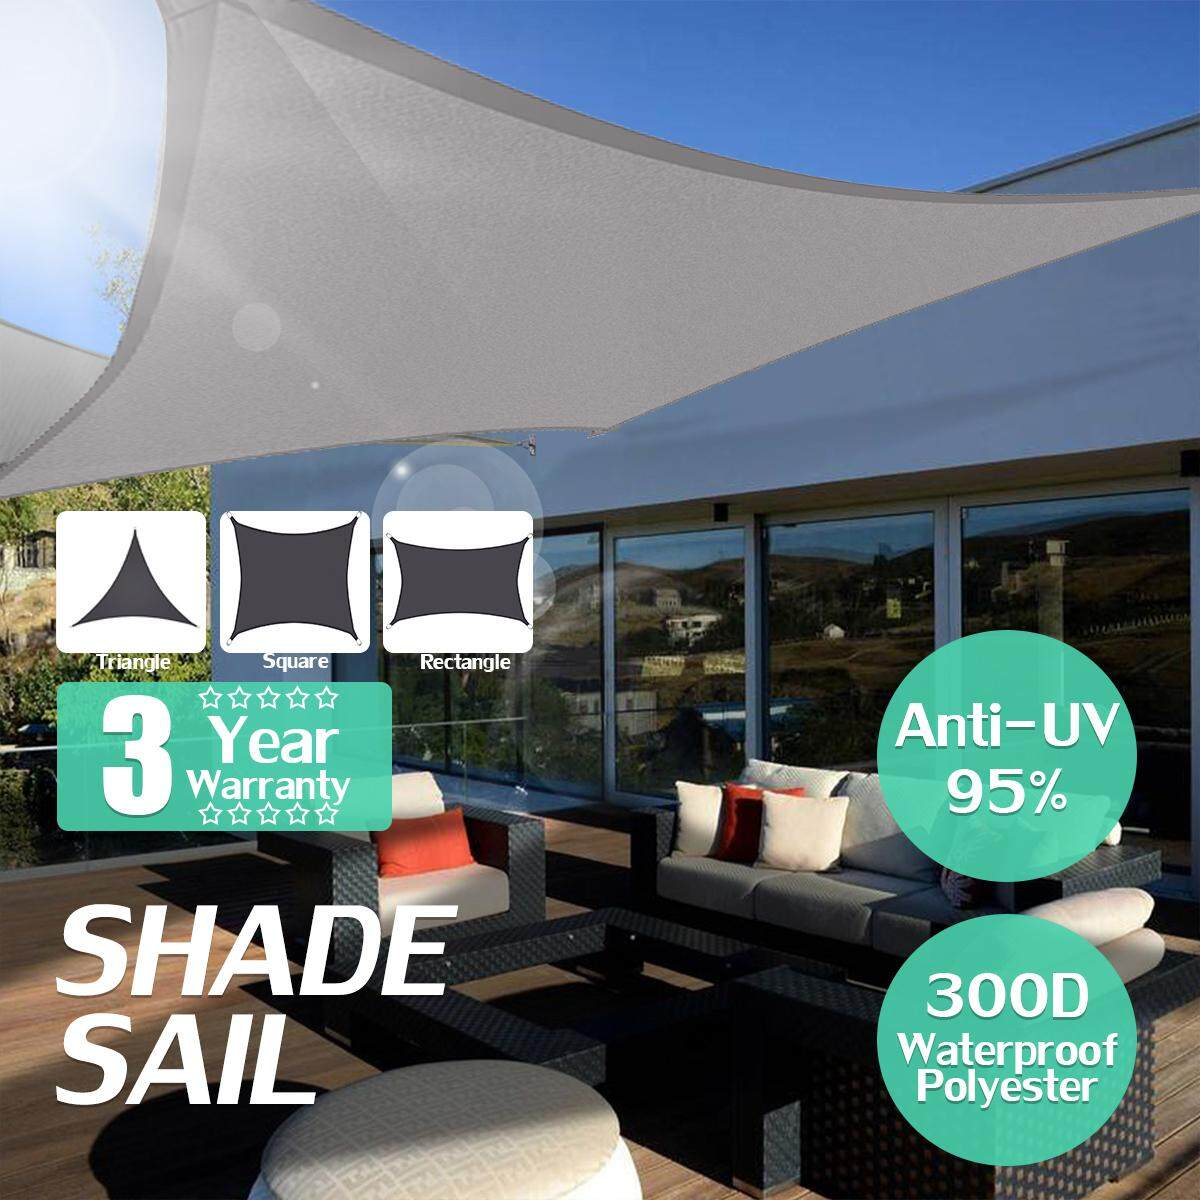 Black 300D 160GSM Waterproof Polyester Oxford Fabric Shade Sail Rectangle